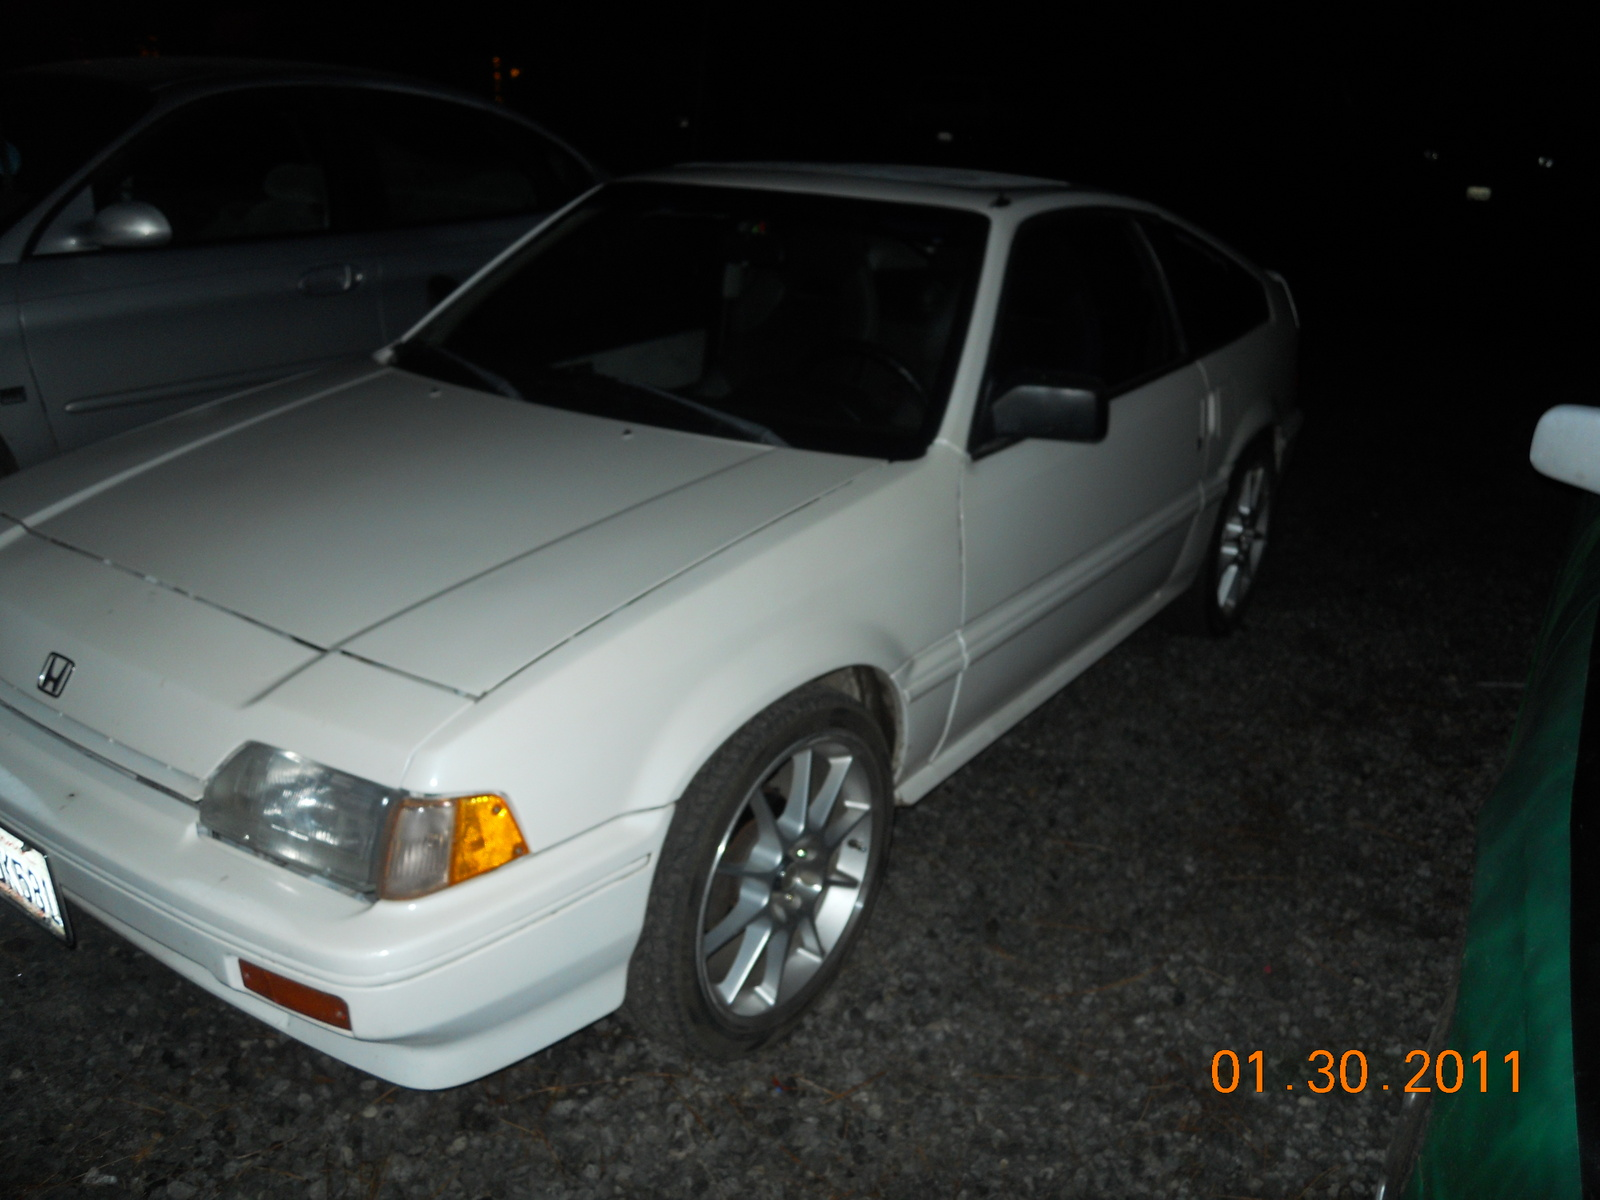 1986 Honda Civic CRX Si Coupe, the night i got it, exterior